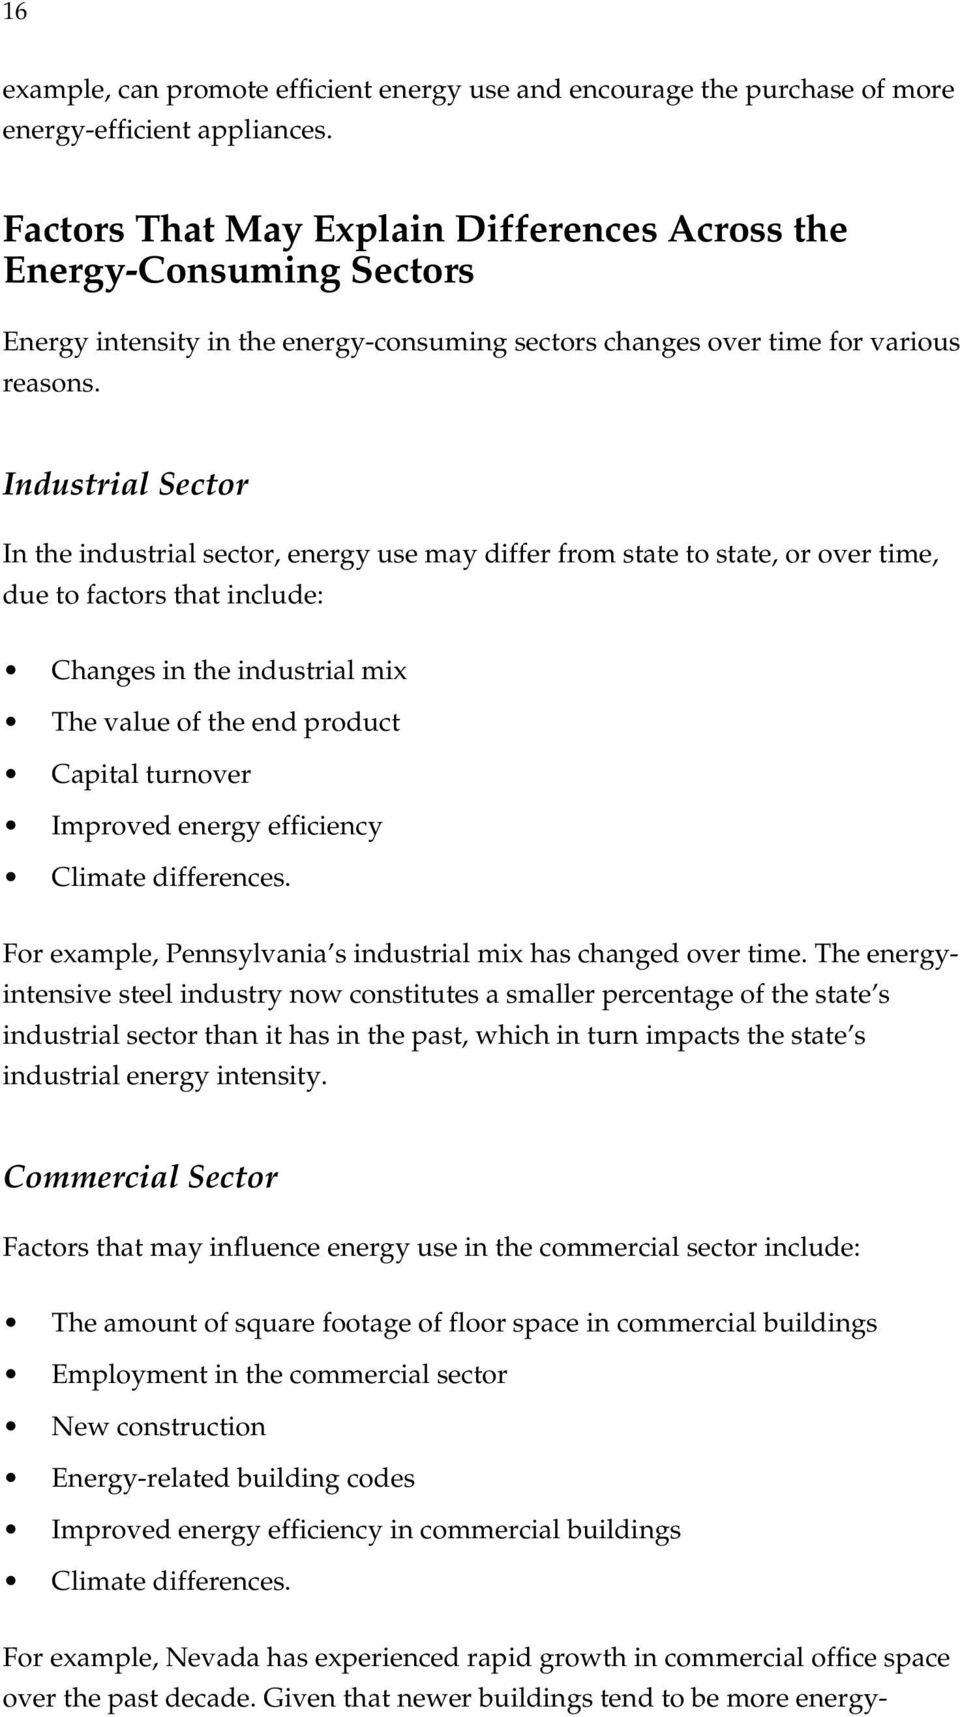 Industrial In the industrial sector, energy use may differ from state to state, or over time, due to factors that include: Changes in the industrial mix The value of the end product Capital turnover